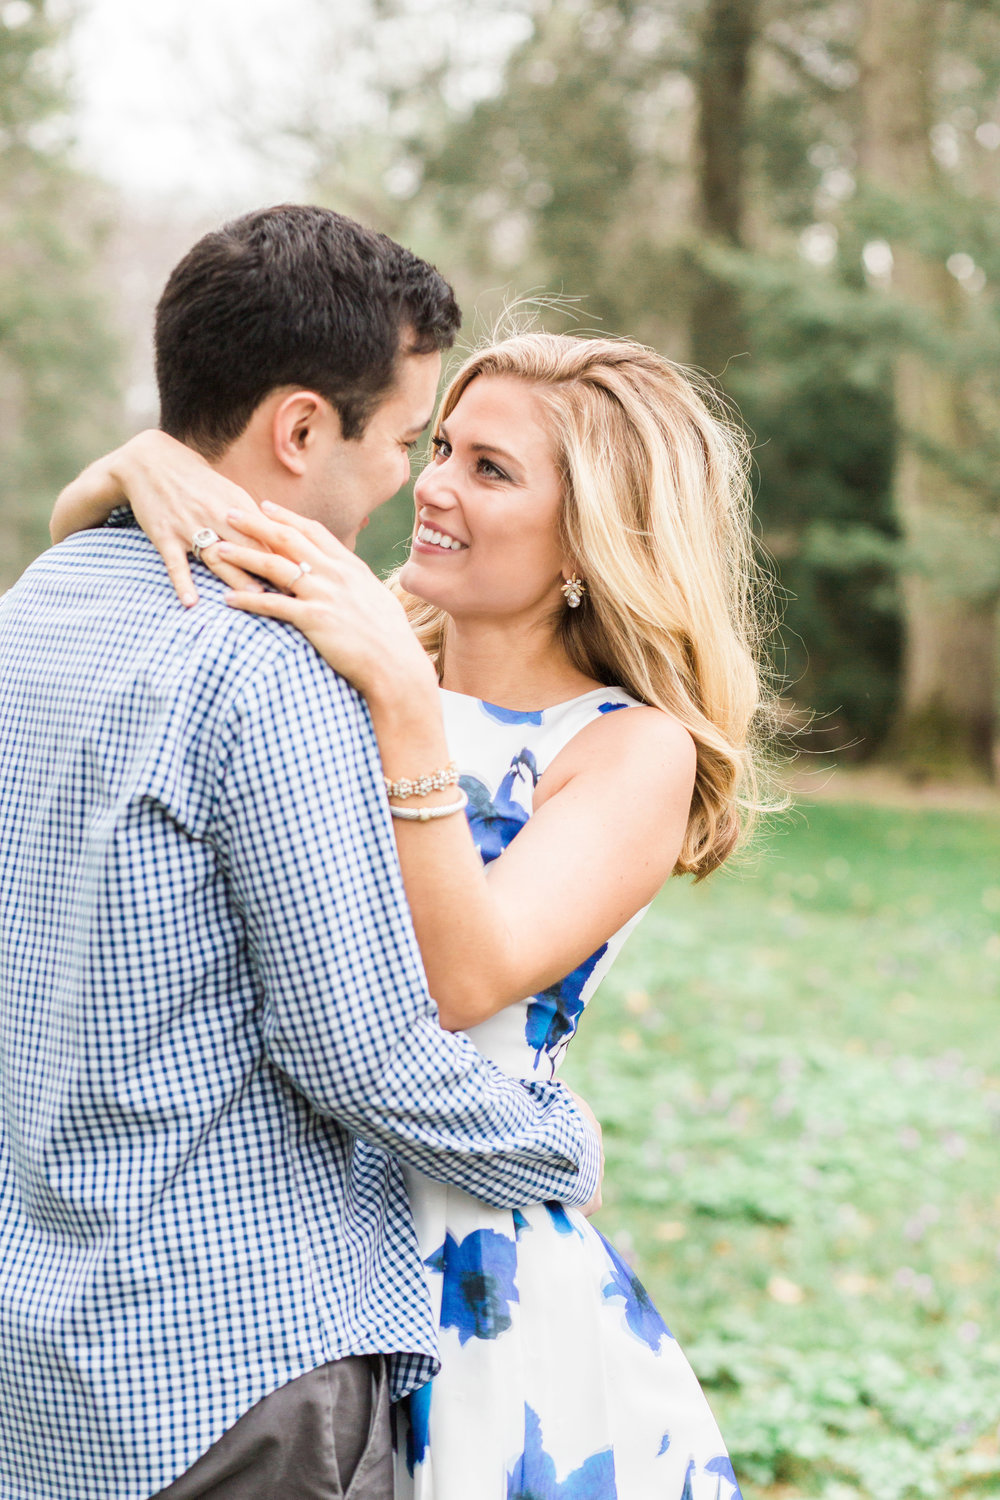 HNP-Chelsea-Jason-Longwood-Gardens-Spring-Engagement-Photos_046.jpg